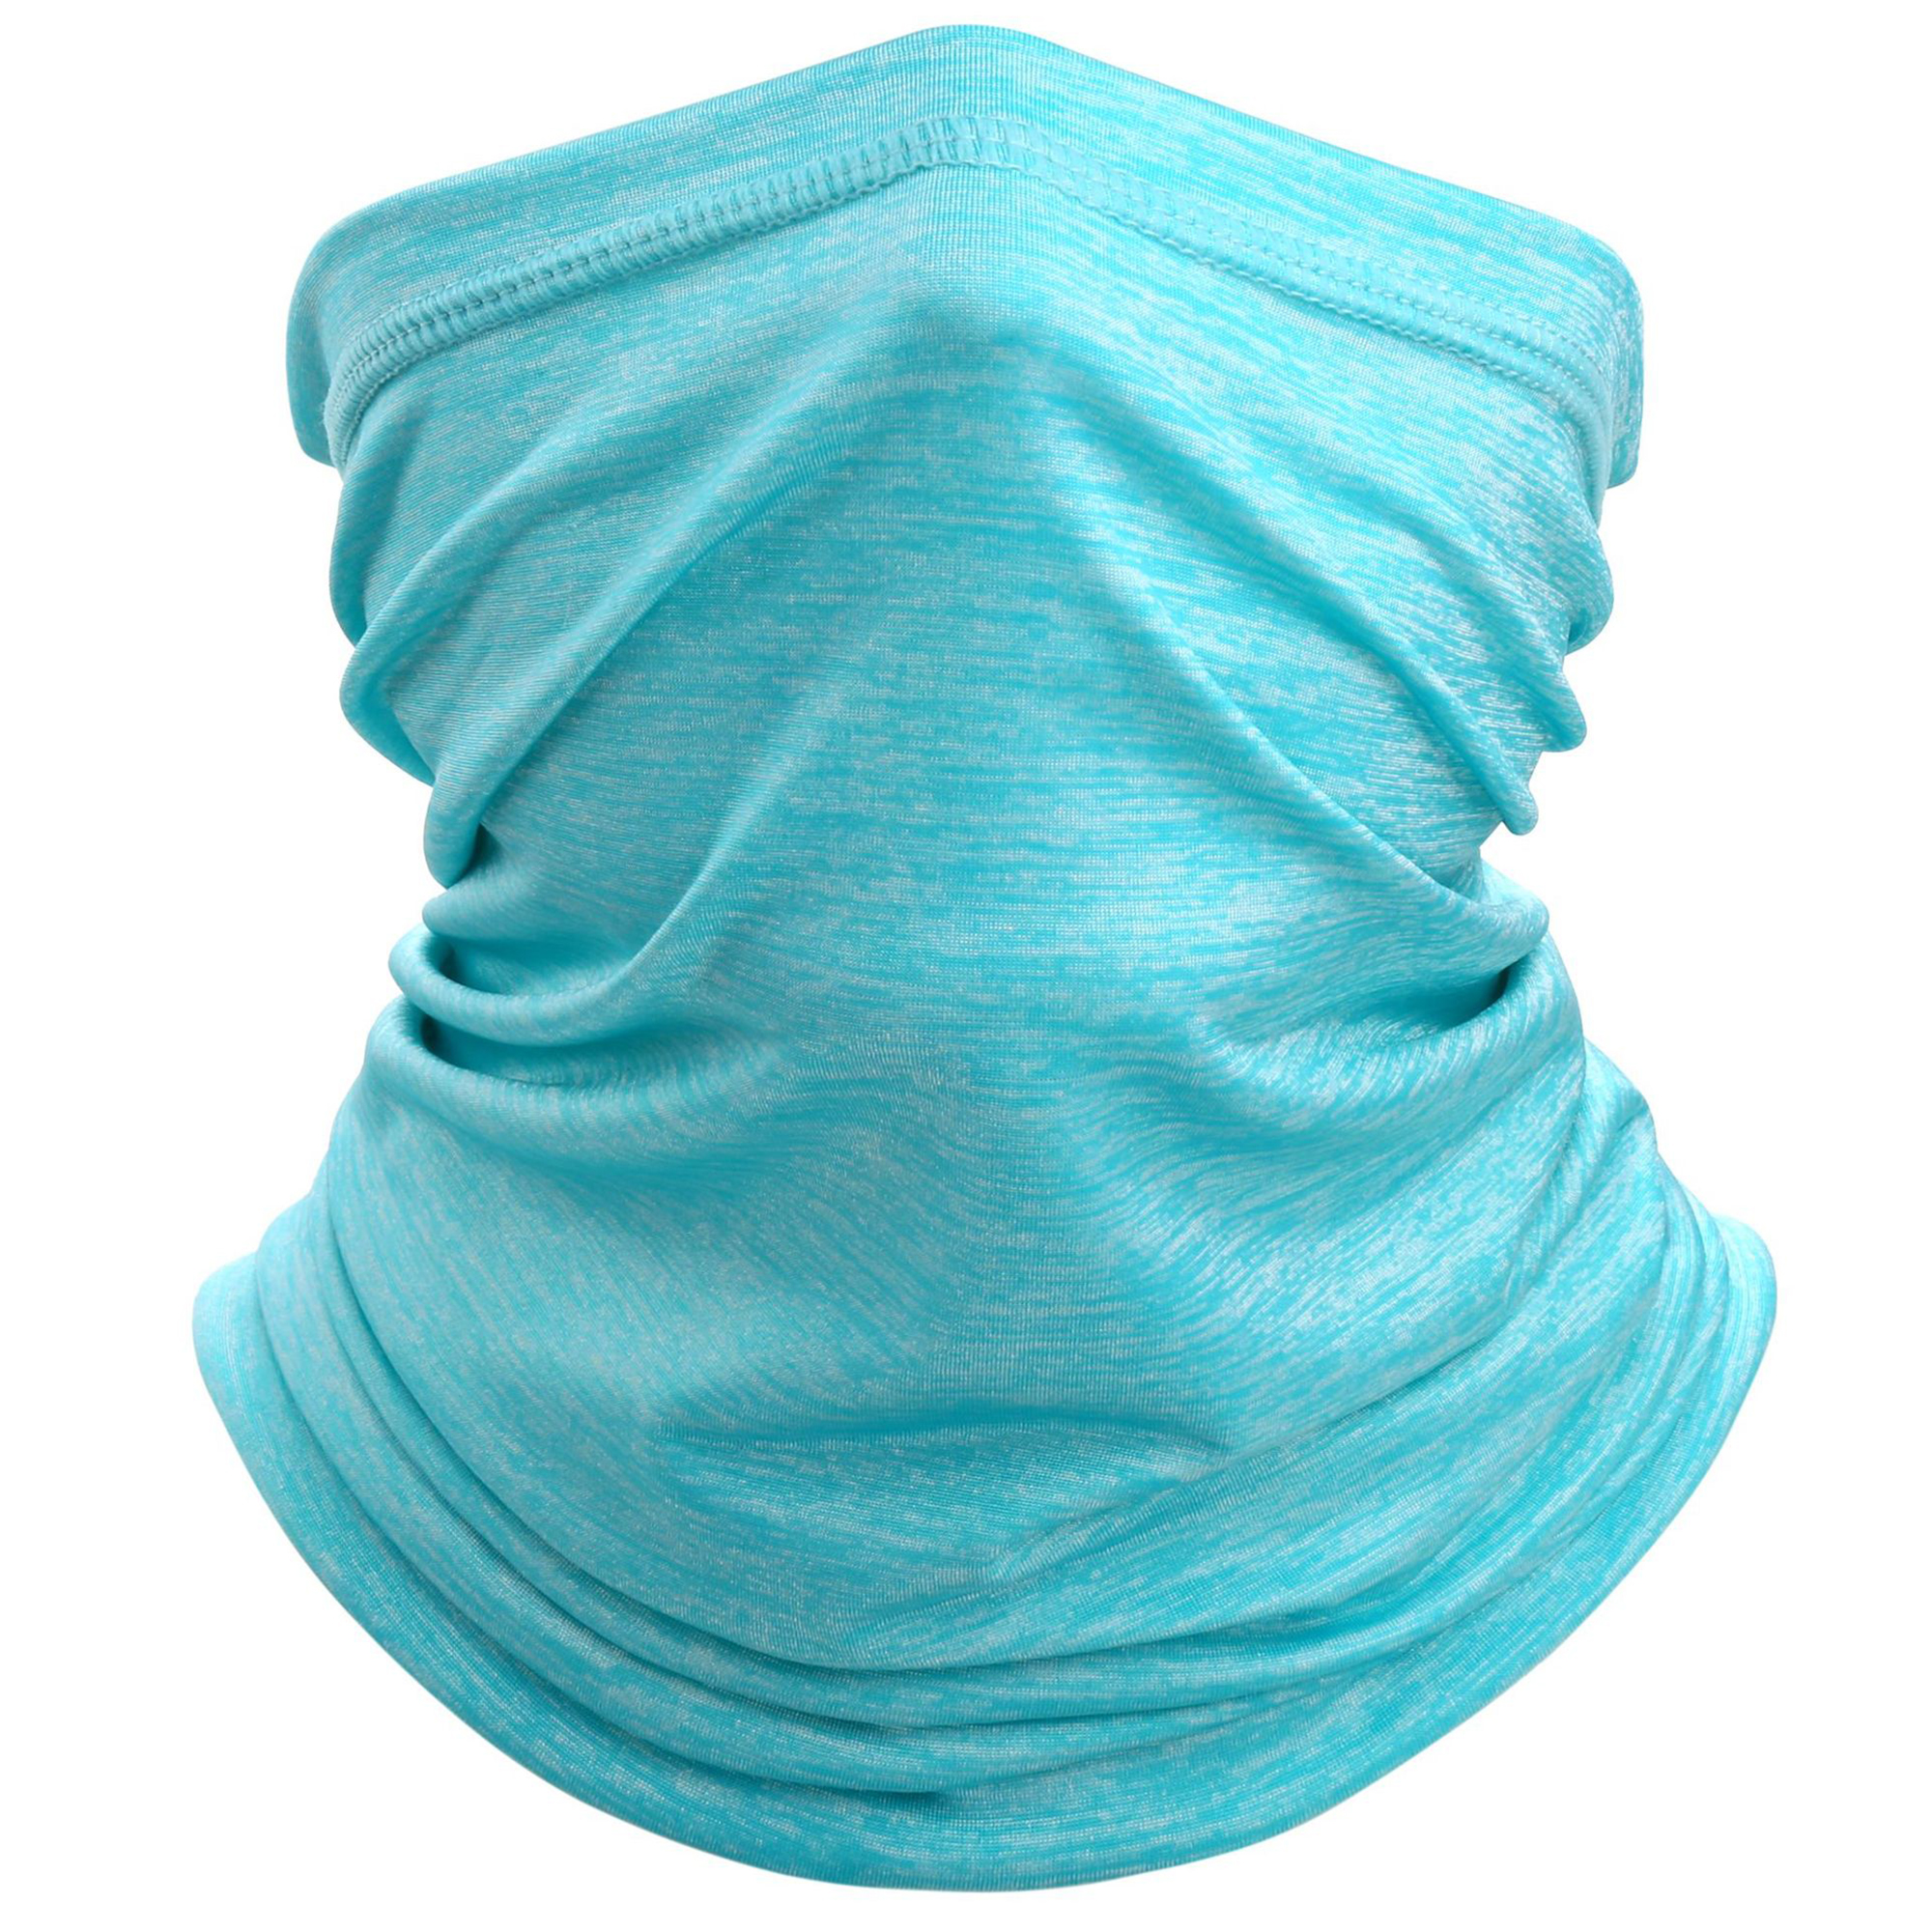 Details about  /Neck Gaiter Tube Scarf Half Face Cover Motorcycle Cycling Hunting Bandana Thin